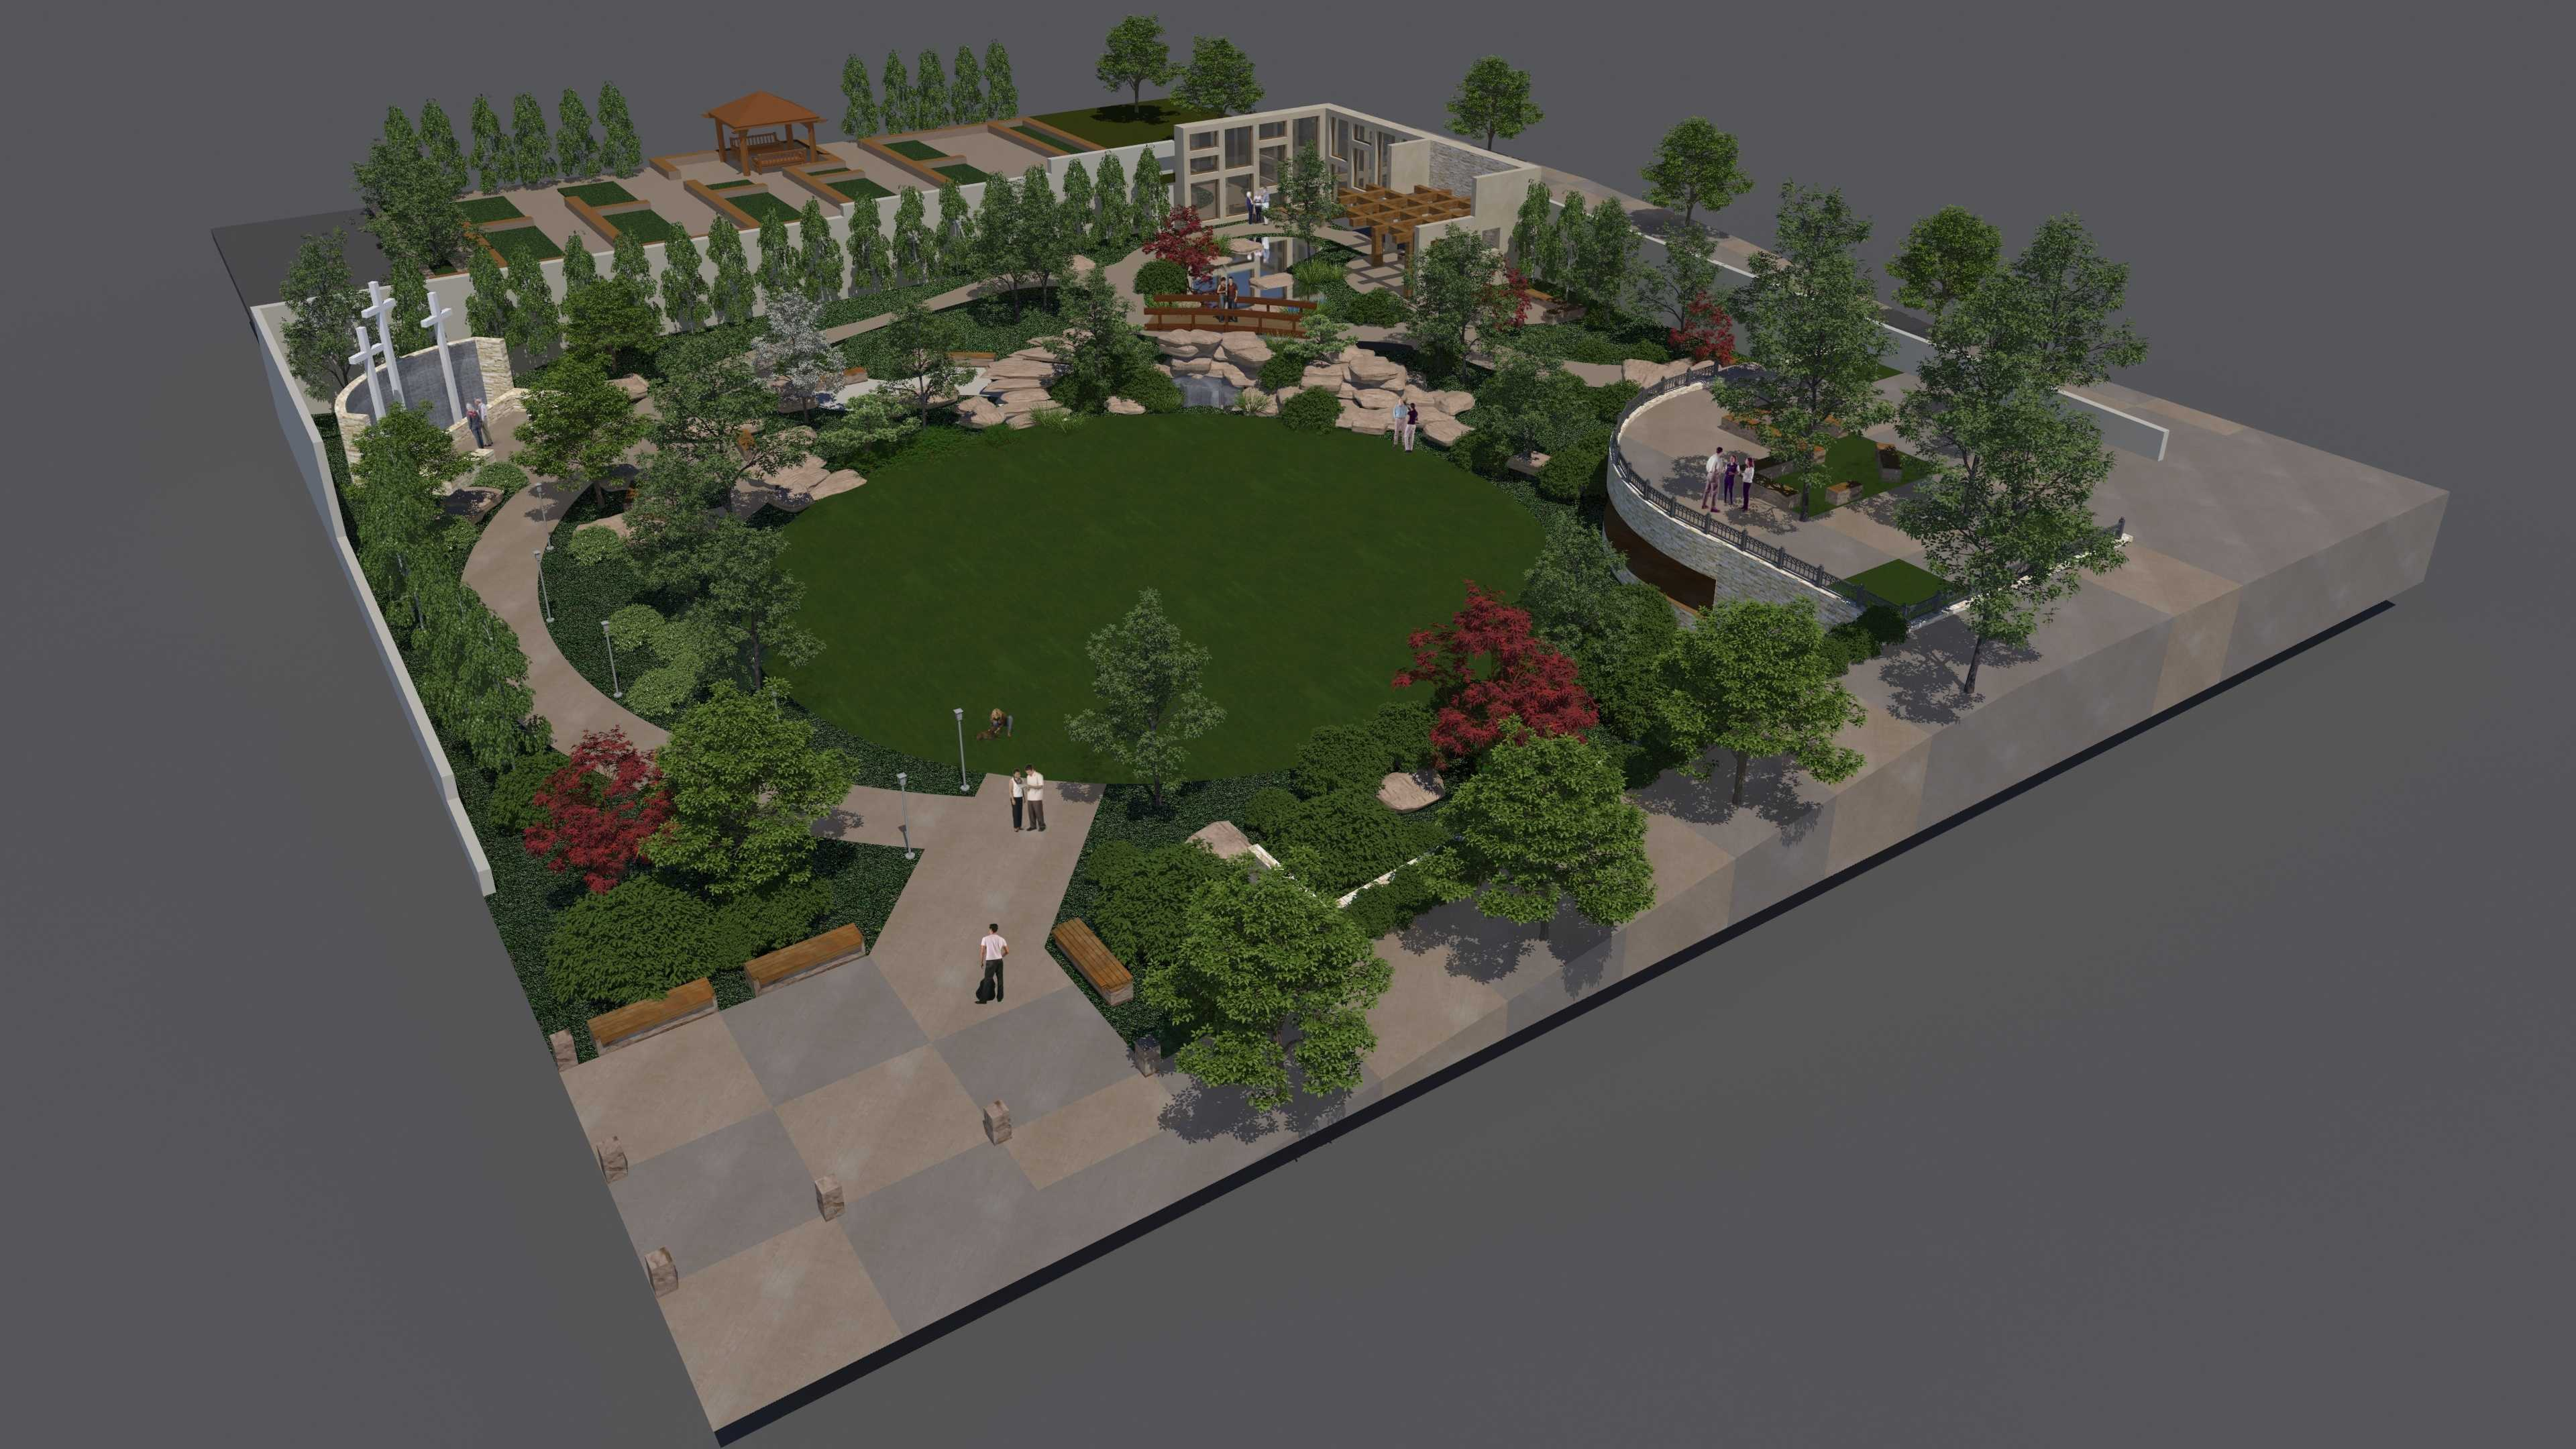 Critics call to end state funding for Bible-themed Iowa park